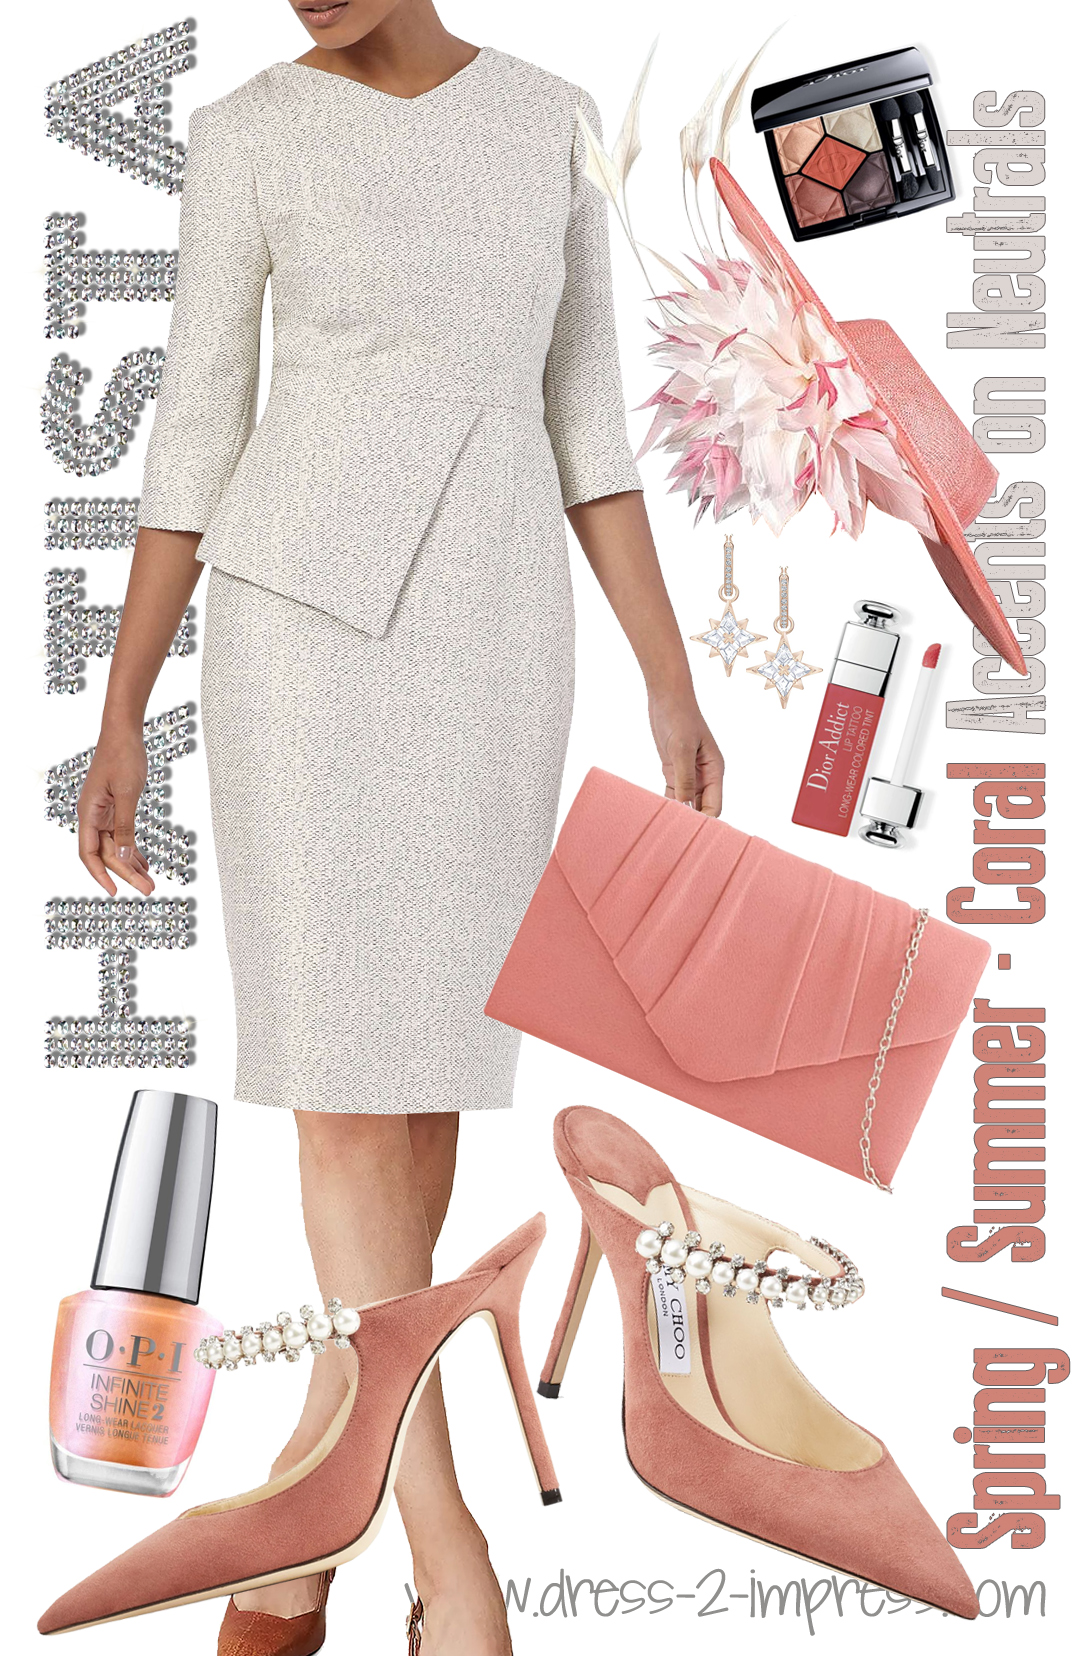 How to wear Coral 2021. The Fold Eaton Tweed Dress as seen on Kate Middleton. The Fold Dress like Kate Middleton Wore. Tweed Mother of the Bride Dress 2021. Outfit inspiration for Mother of the Bride 2021. Outfit ideas with Coral 2021. Jimmy Choo Bing Shoes 2021. Spring Wedding Guest outfits 2021. Coral Mother of the Bride Hat 2021.  Coral Mother of the Bride Outfits 2021. Coral Outfit ideas for the races 2021. Outfits for the races 2021.